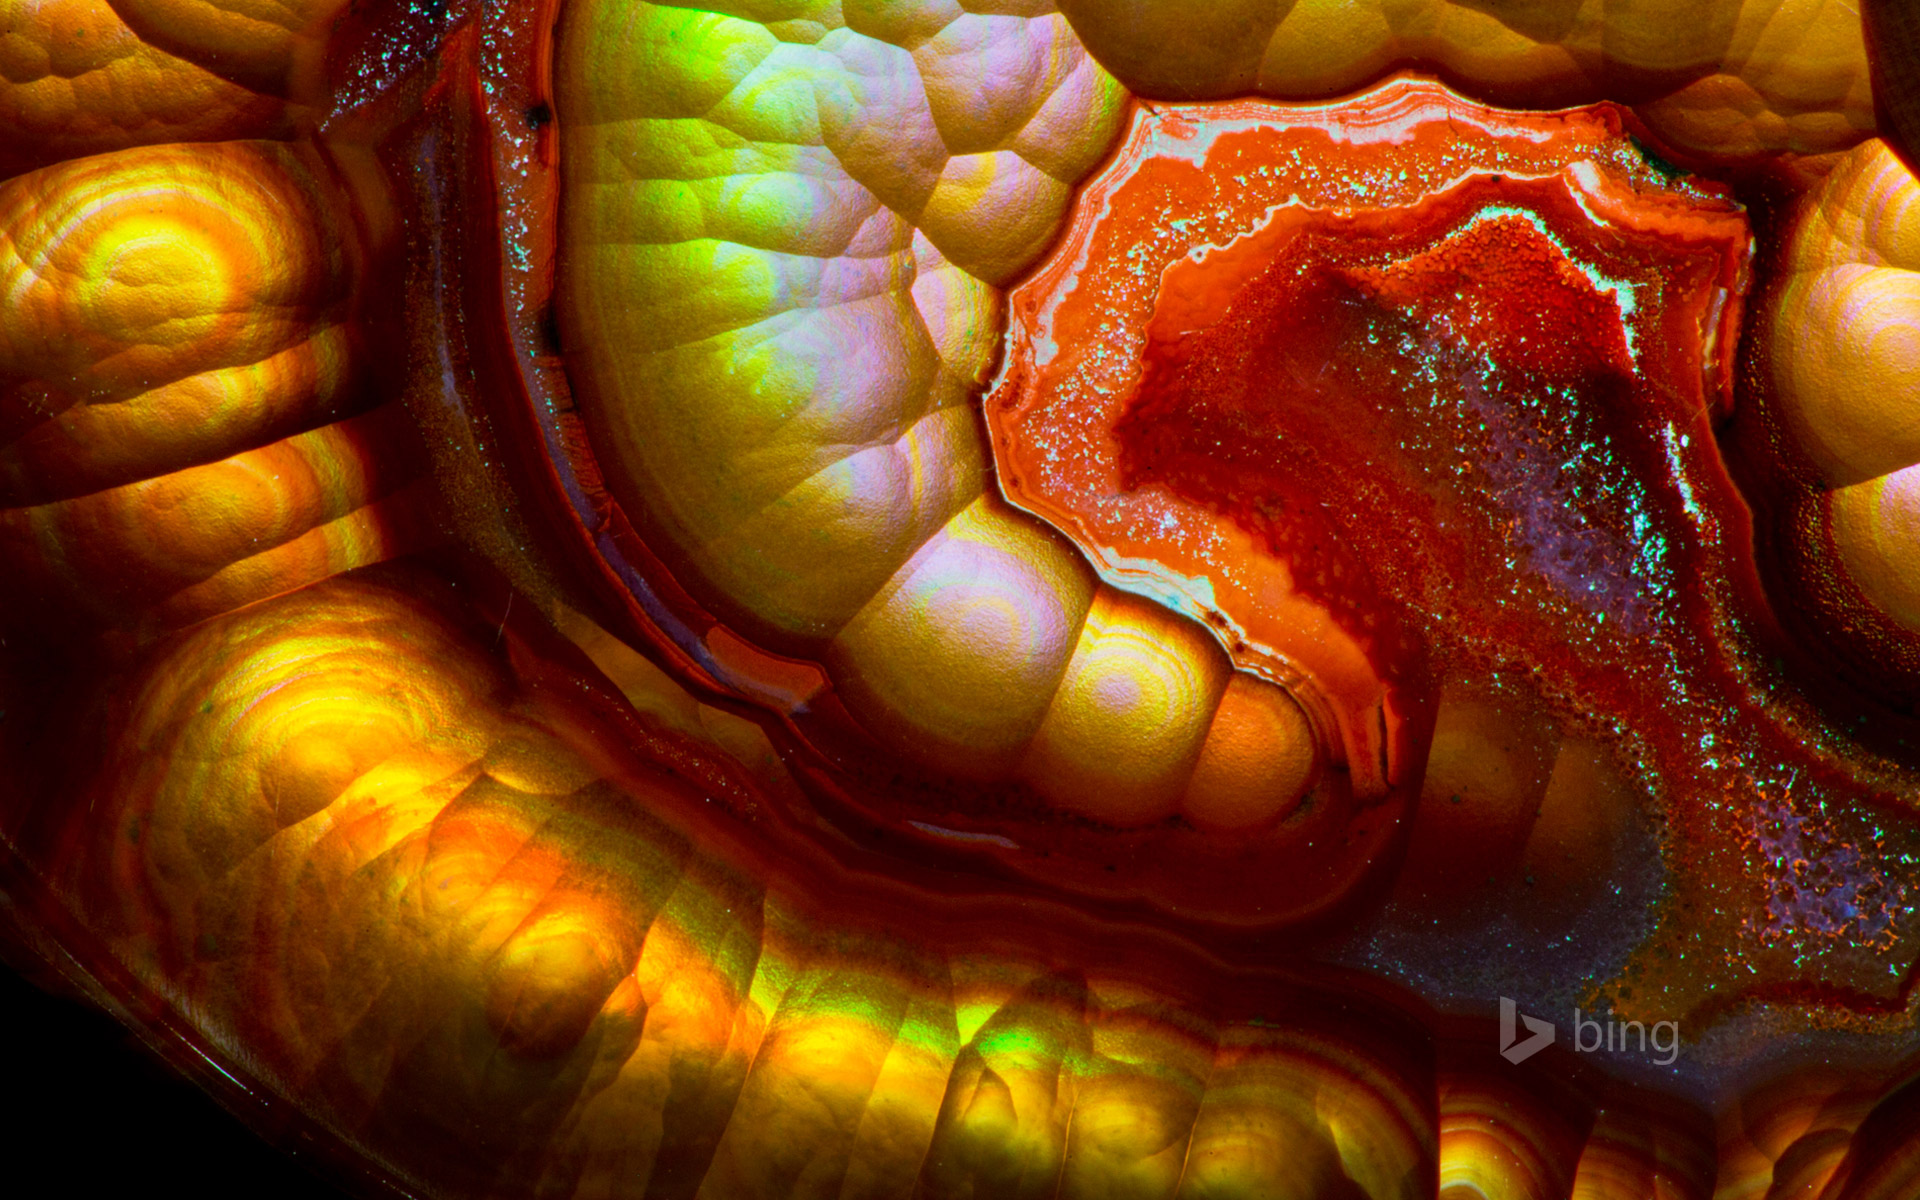 Close-up view of a fire agate gemstone